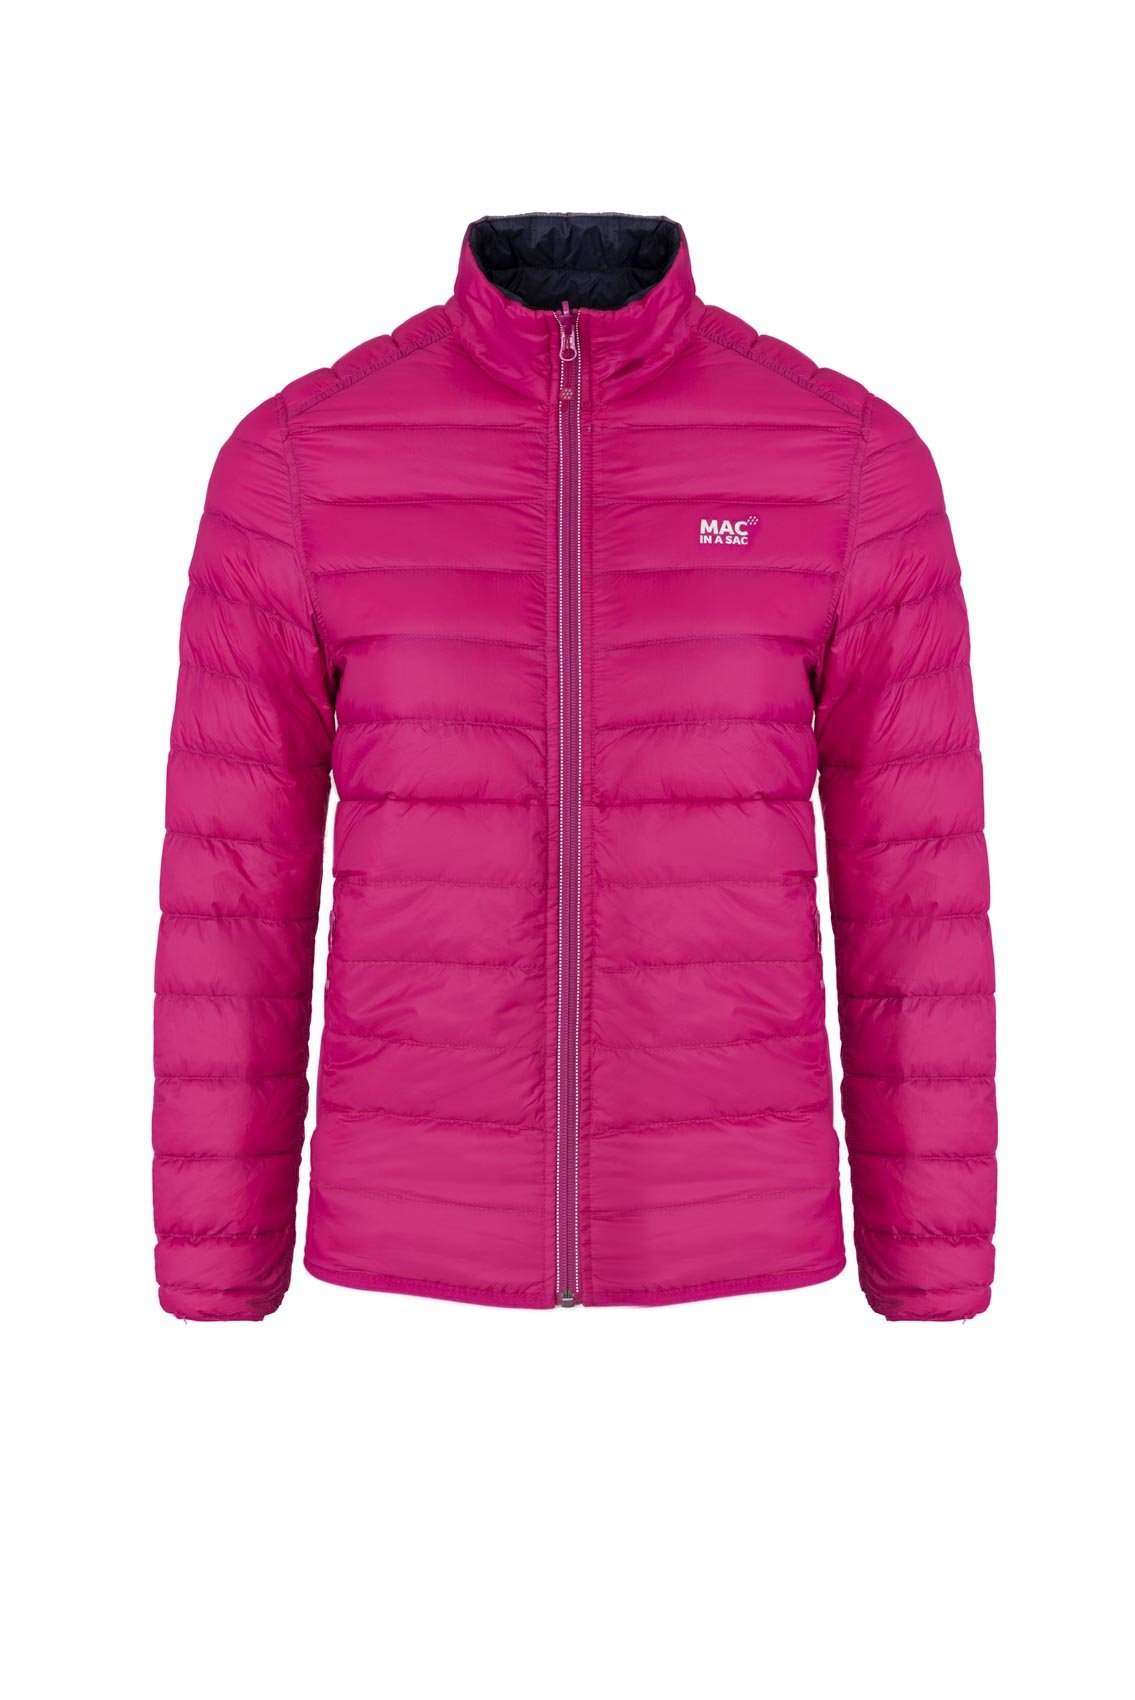 Mac in a Sac Polar - Womens Reversible Packable Down Jacket